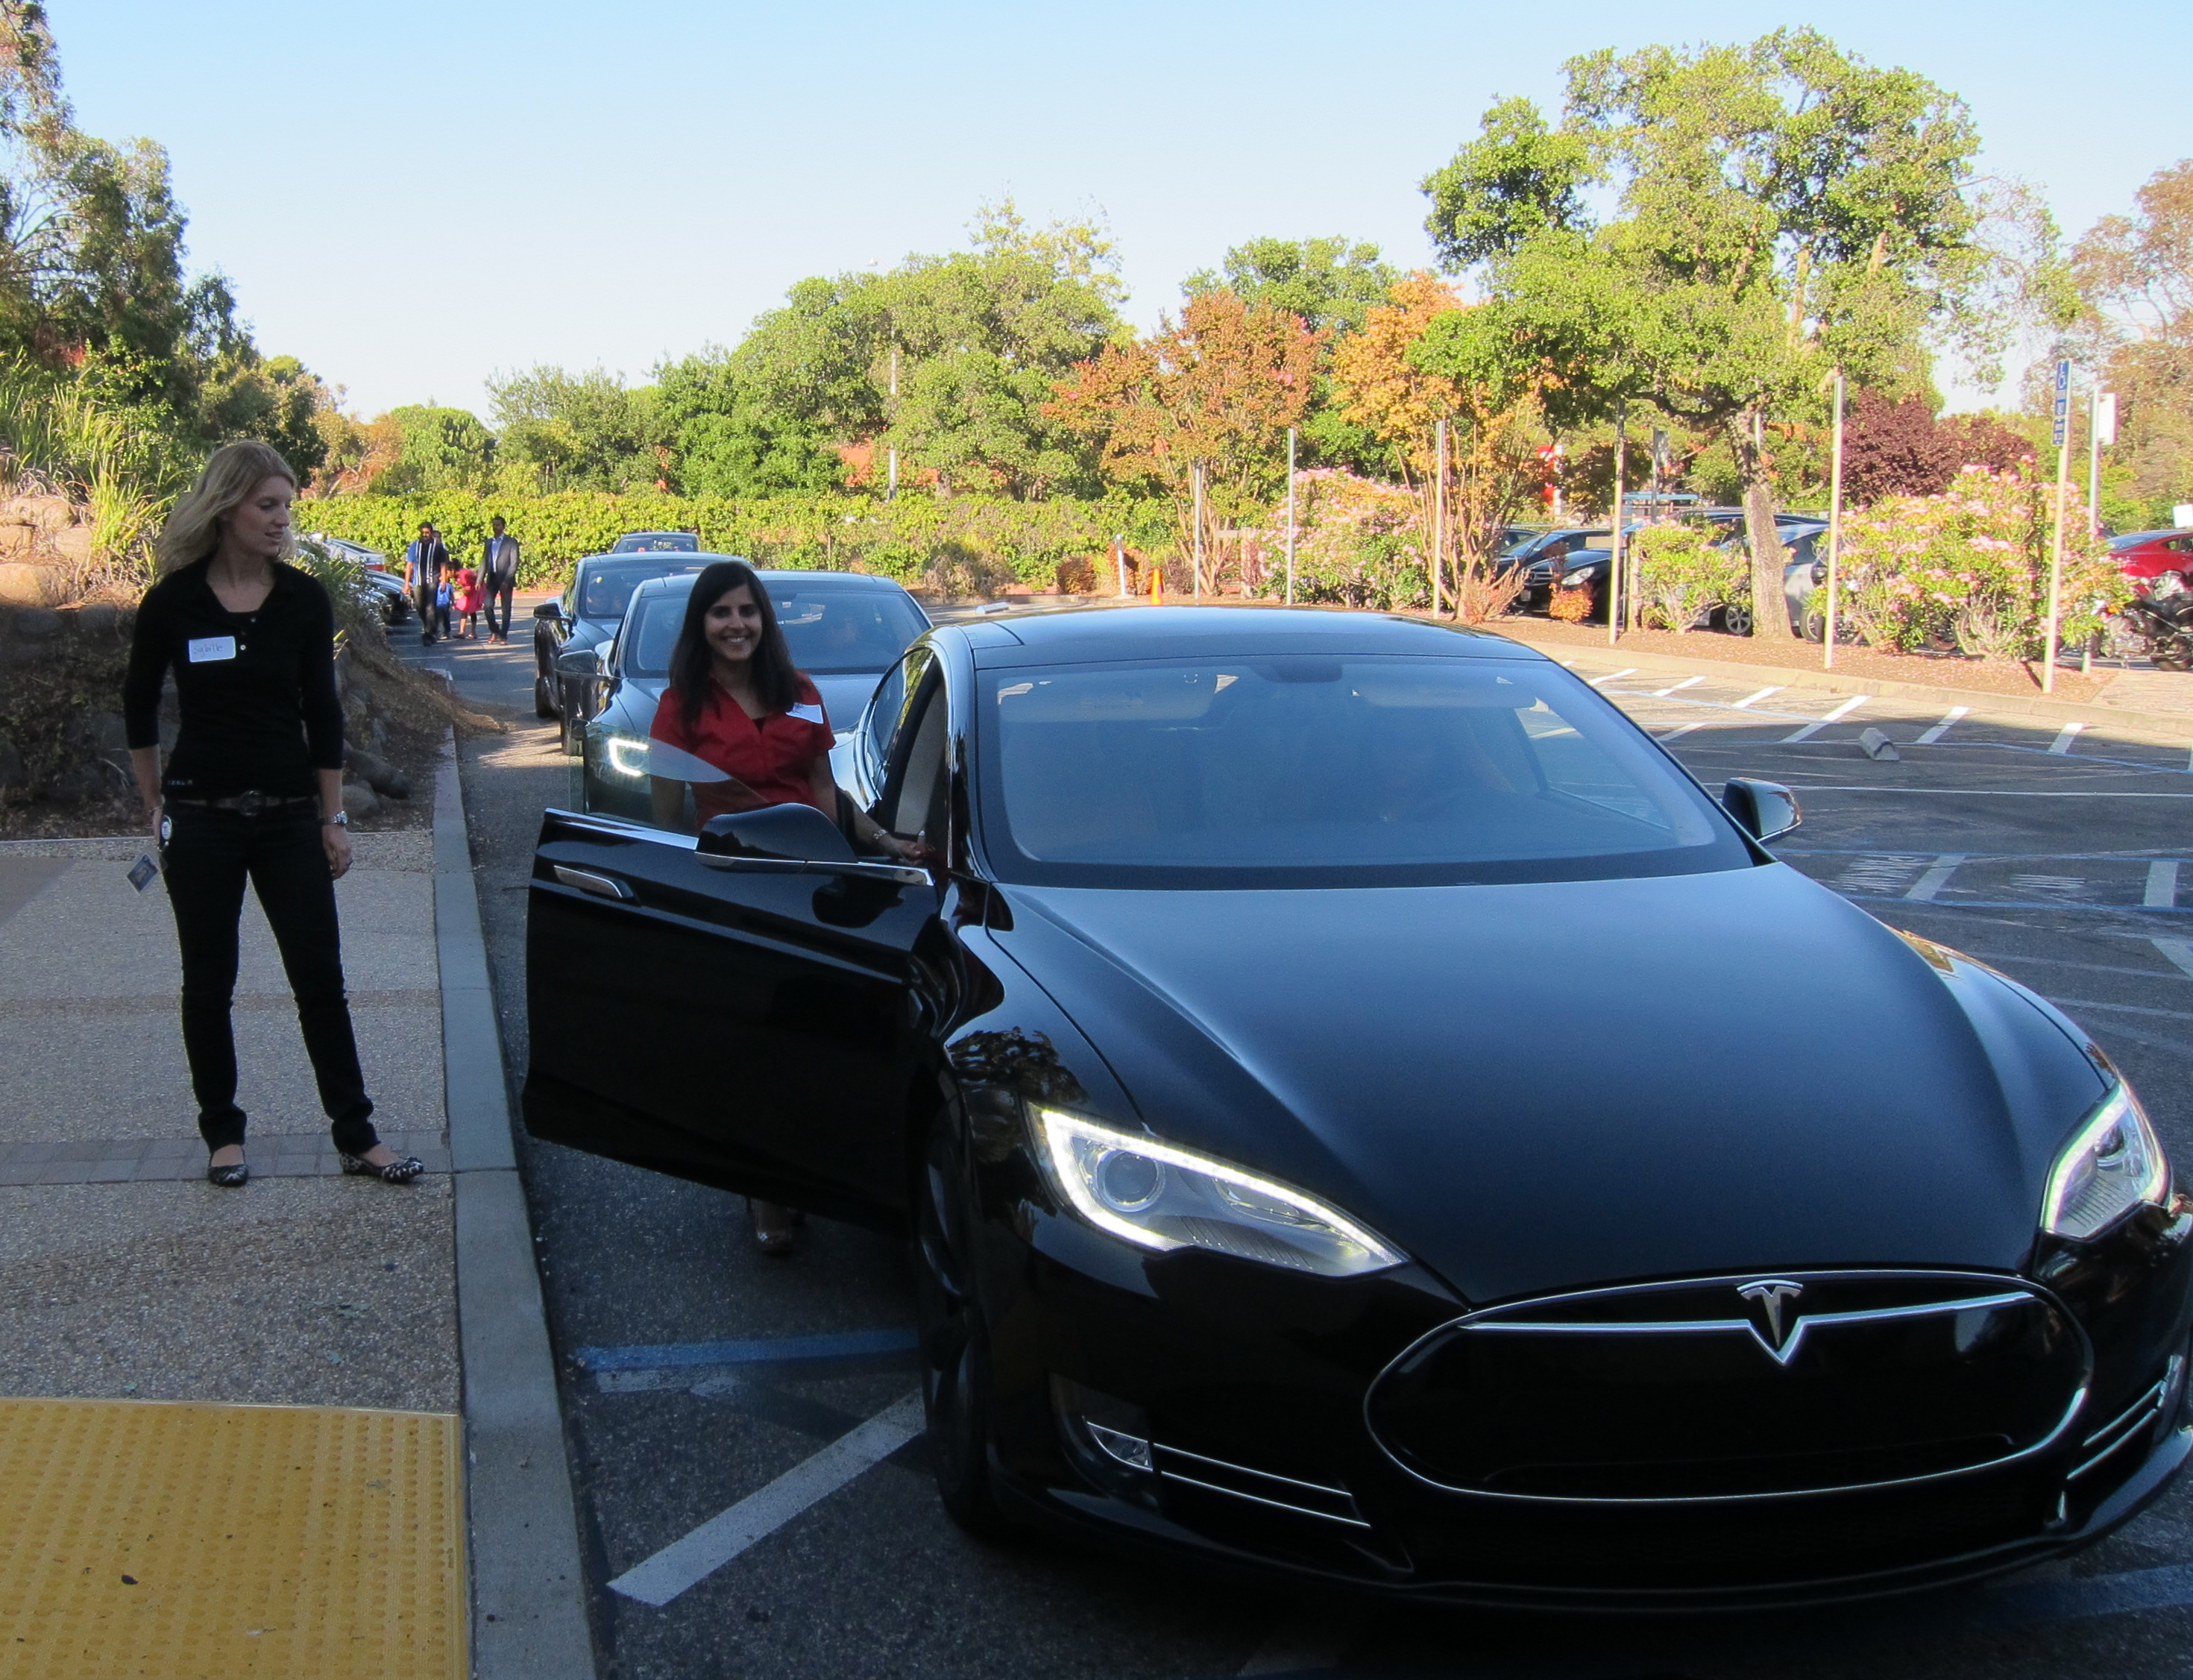 Car Moving Companies >> Girl Geeks Descend On Tesla in Silicon Valley   Fresh Dialogues